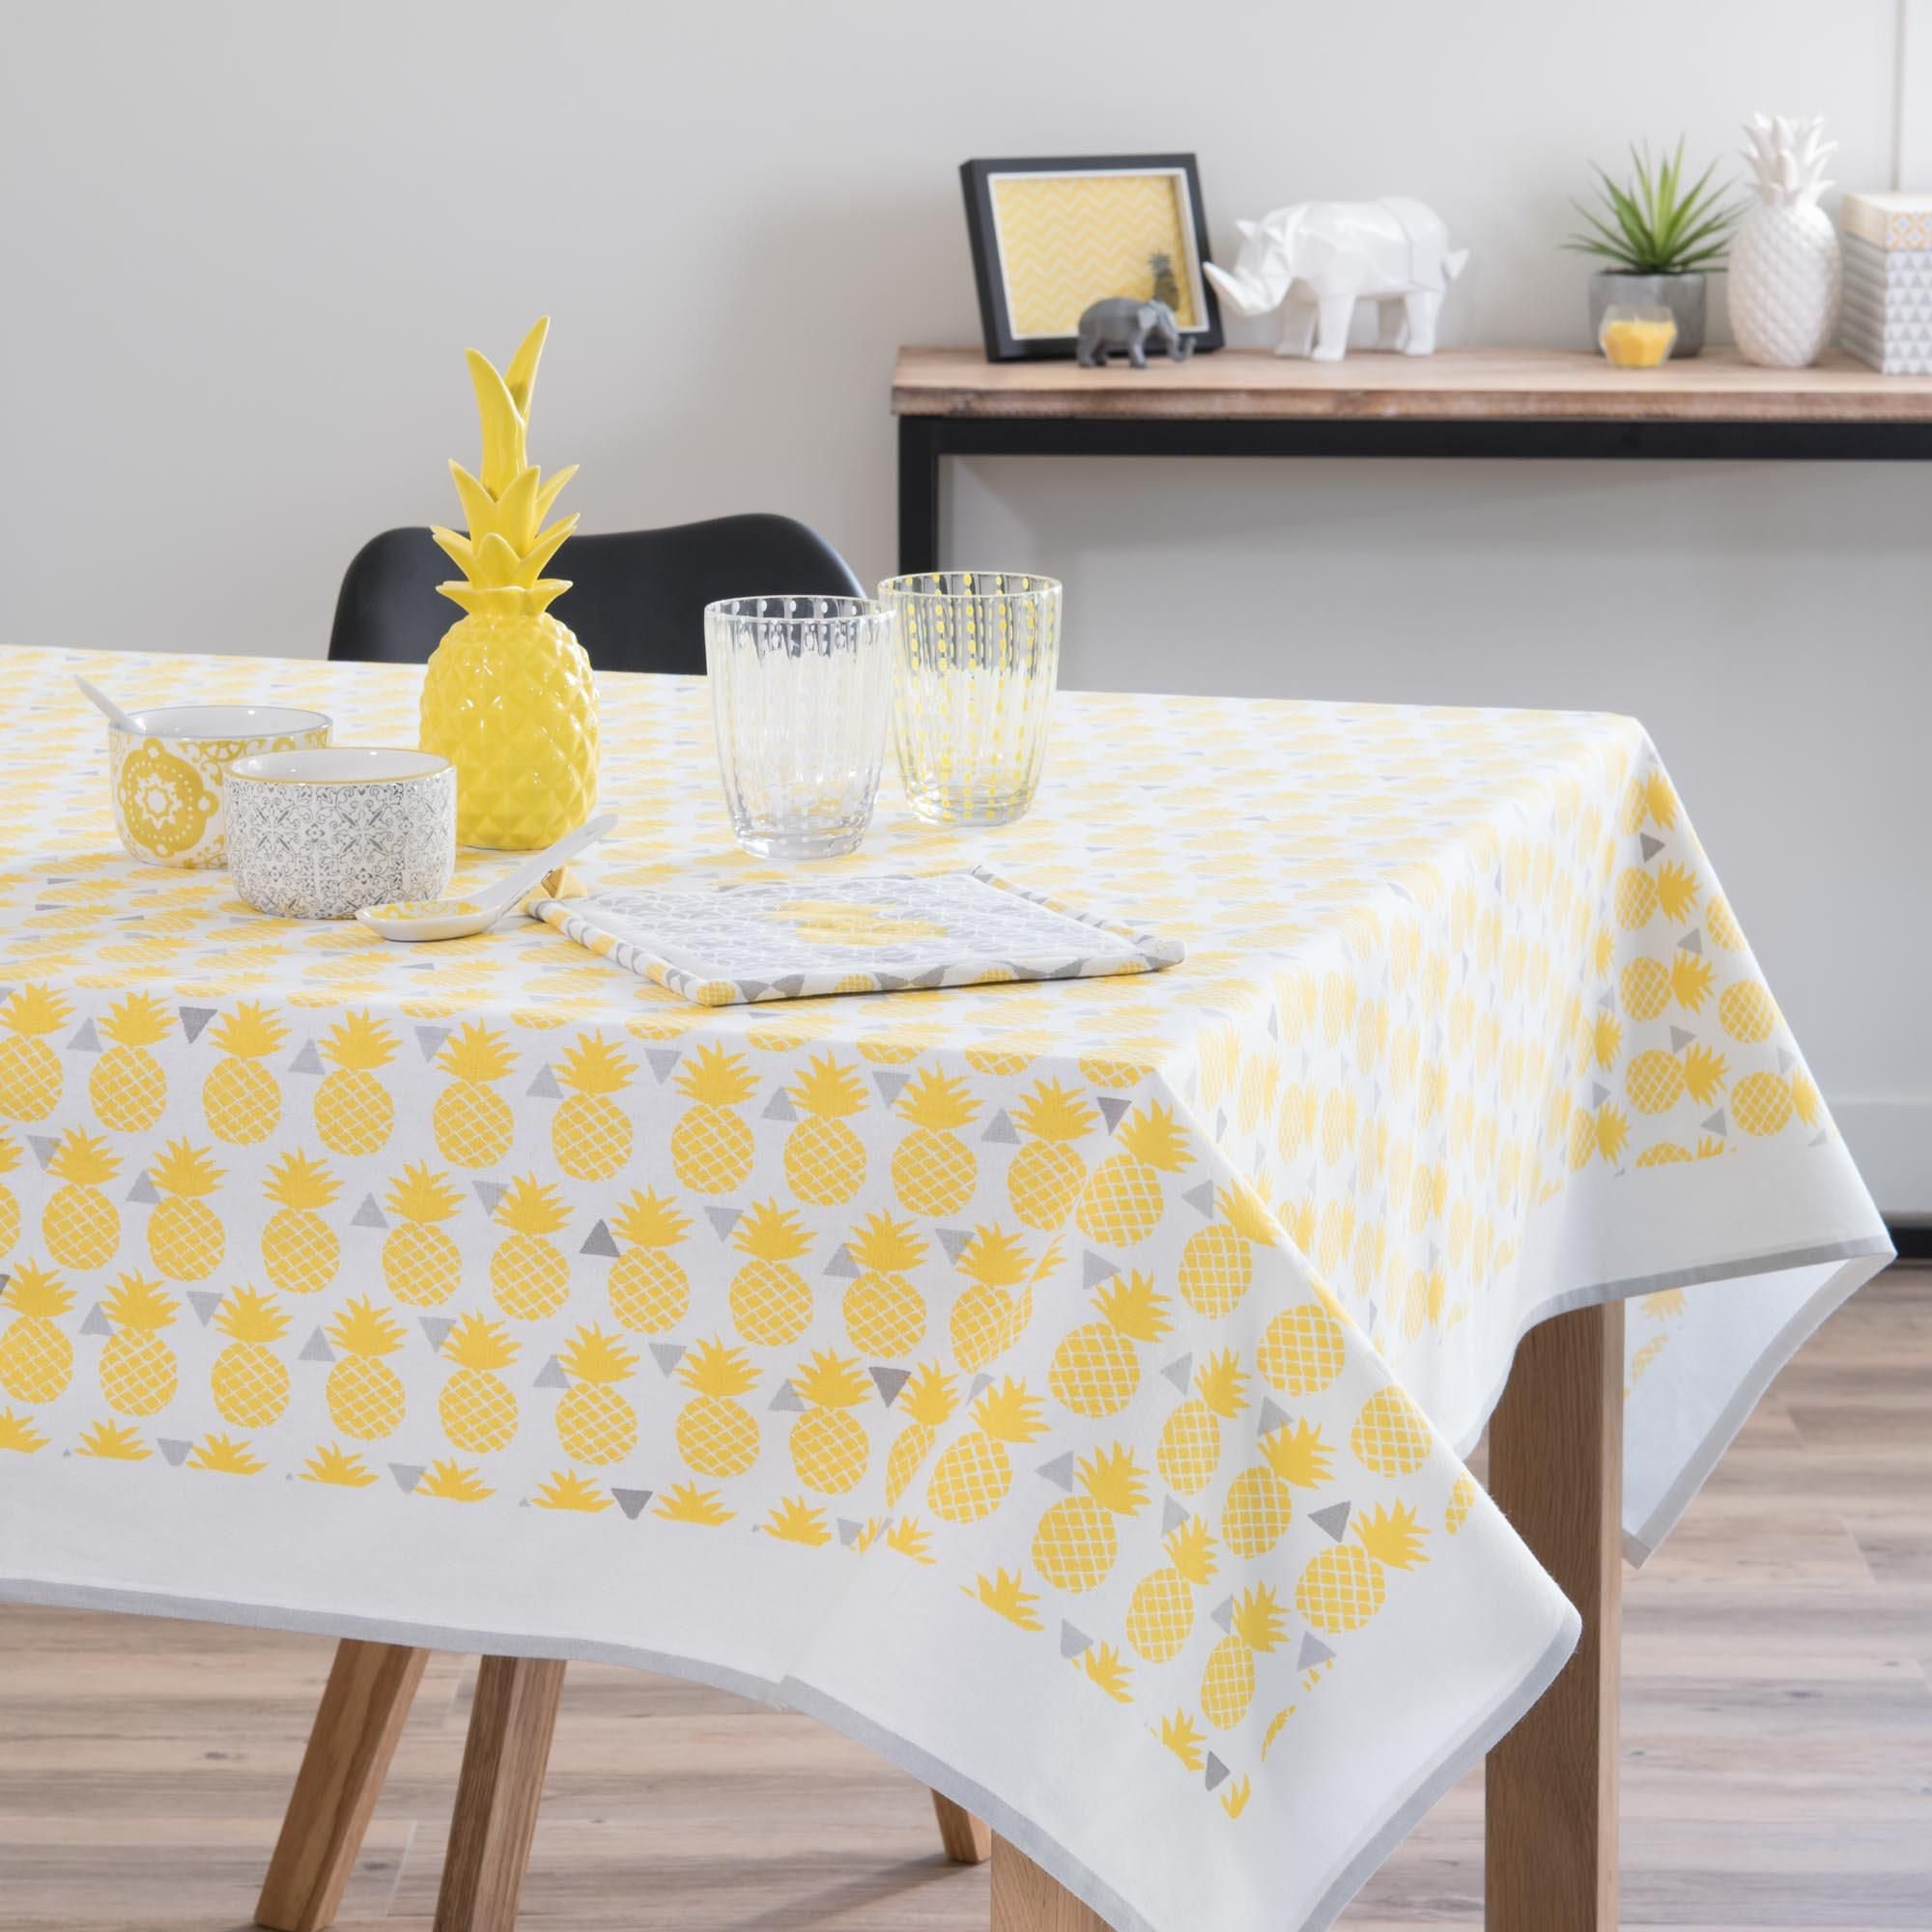 Nappe en coton jaune 150 x 250 cm pinapple maisons du monde dining table yellow cotton et - Maison du monde nappe ...